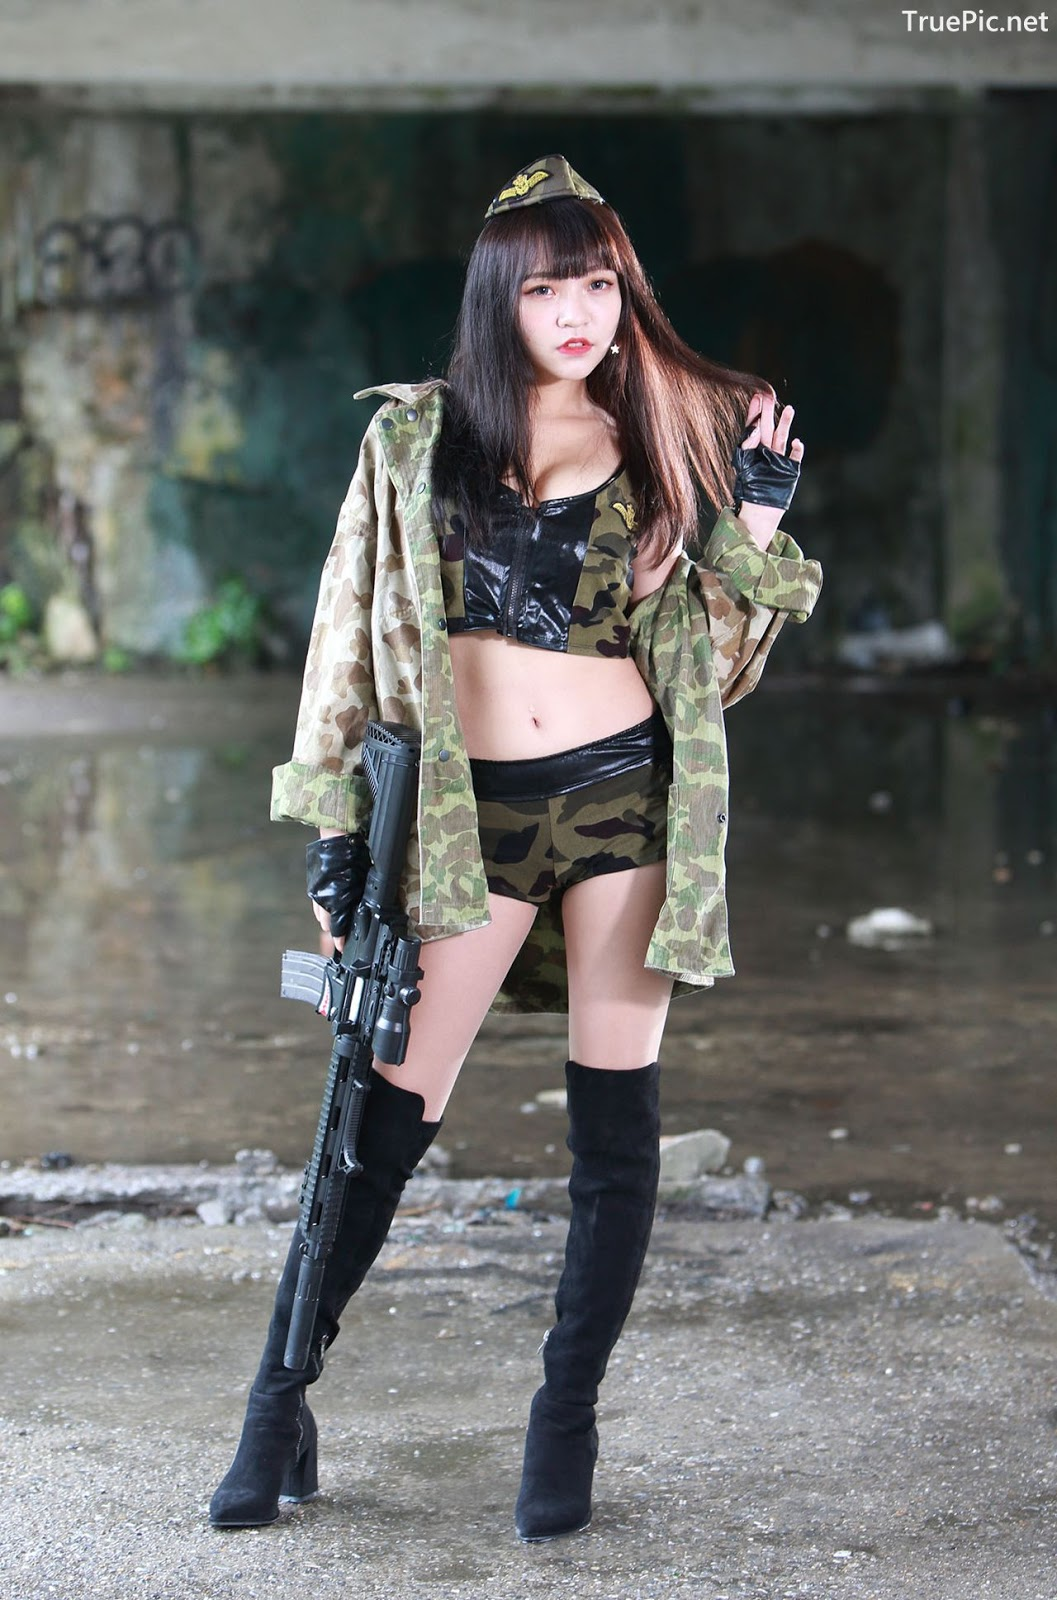 Image-Pretty-Taiwanese-Girl-林襄-Beautiful-And-Sexy-Warrior-Girl-TruePic.net- Picture-8